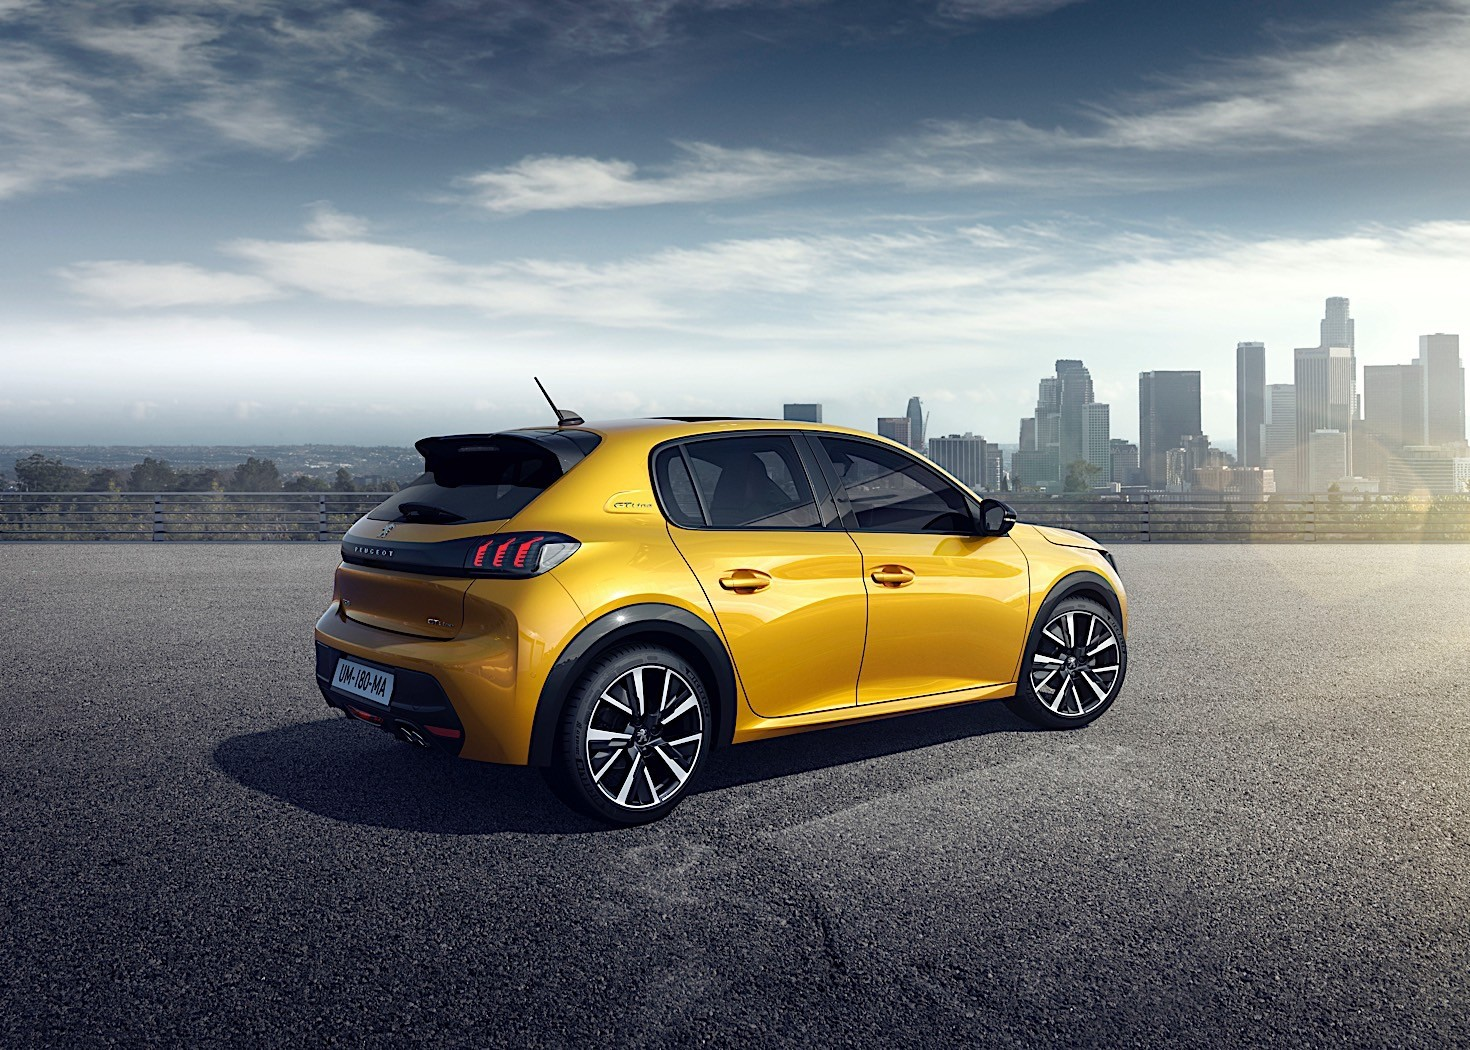 2020 Peugeot 208 Fully Revealed, To Debut In Geneva With